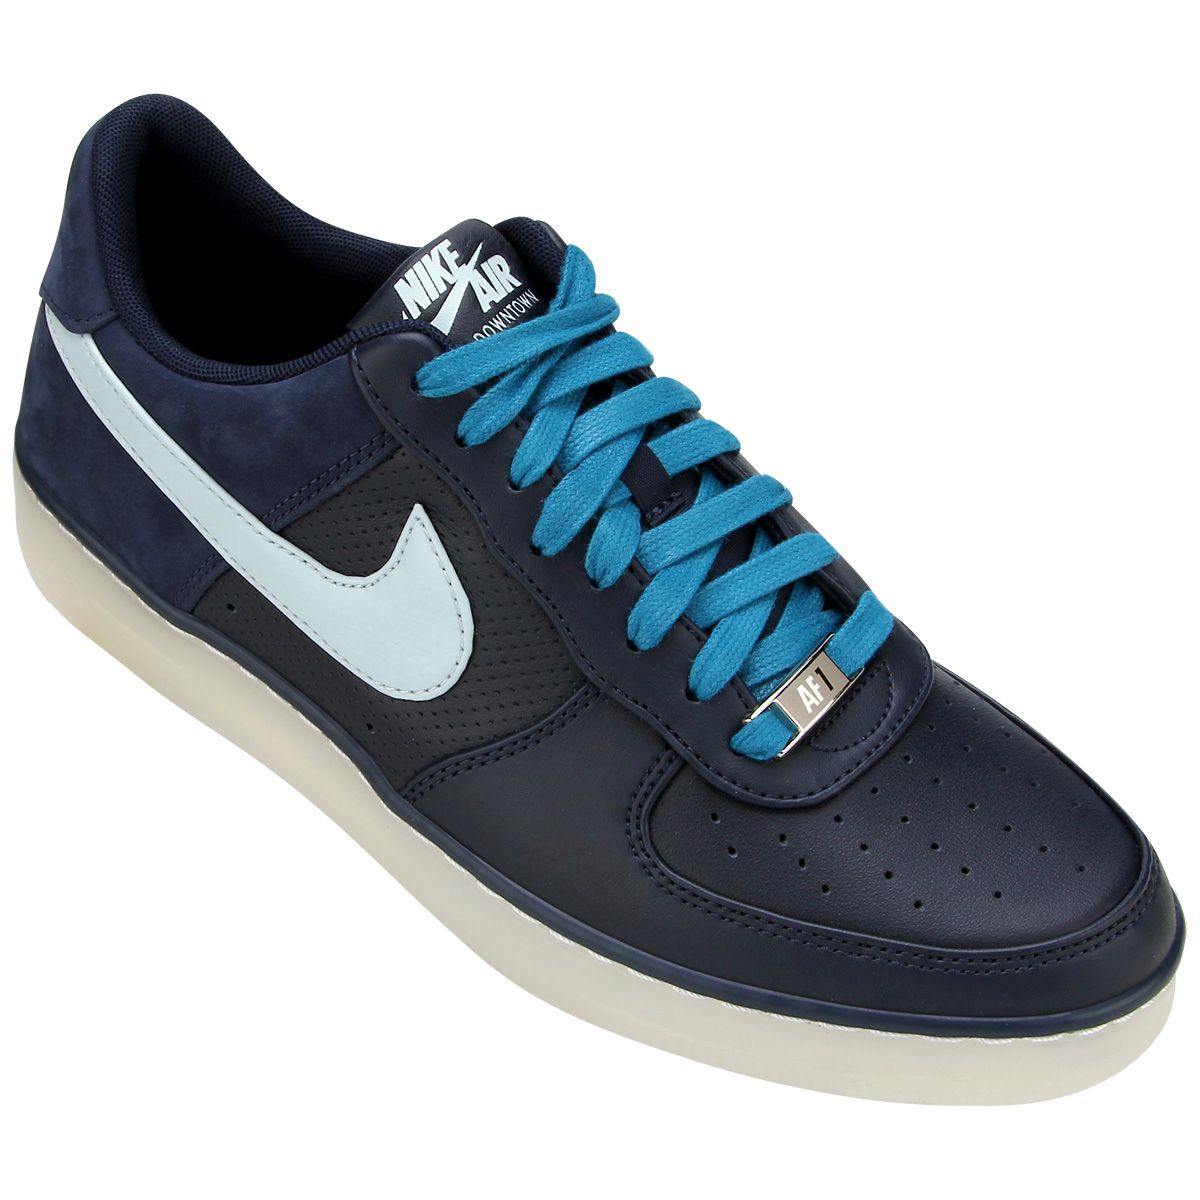 promo code b5c0f fa29f Tênis Nike AF1 Downtown   Netshoes Tenis Casual Adidas, Air Force Sneakers,  Nike Air